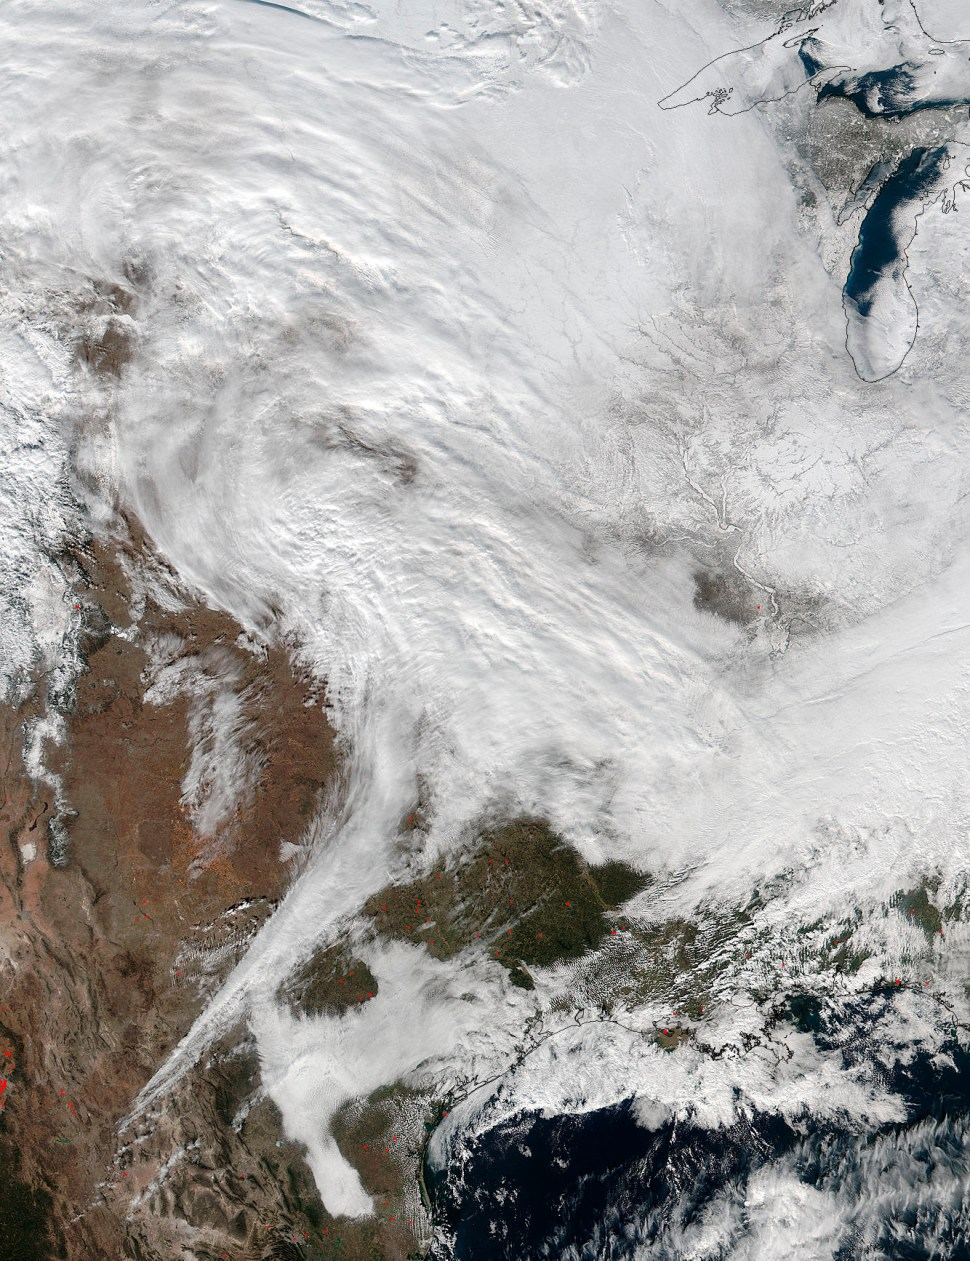 A large winter storm expected to bring heavy snowfall to the U.S. Mid-Atlantic on Jan. 22 and 23 in a Jan. 20, 2016 NASA photo.